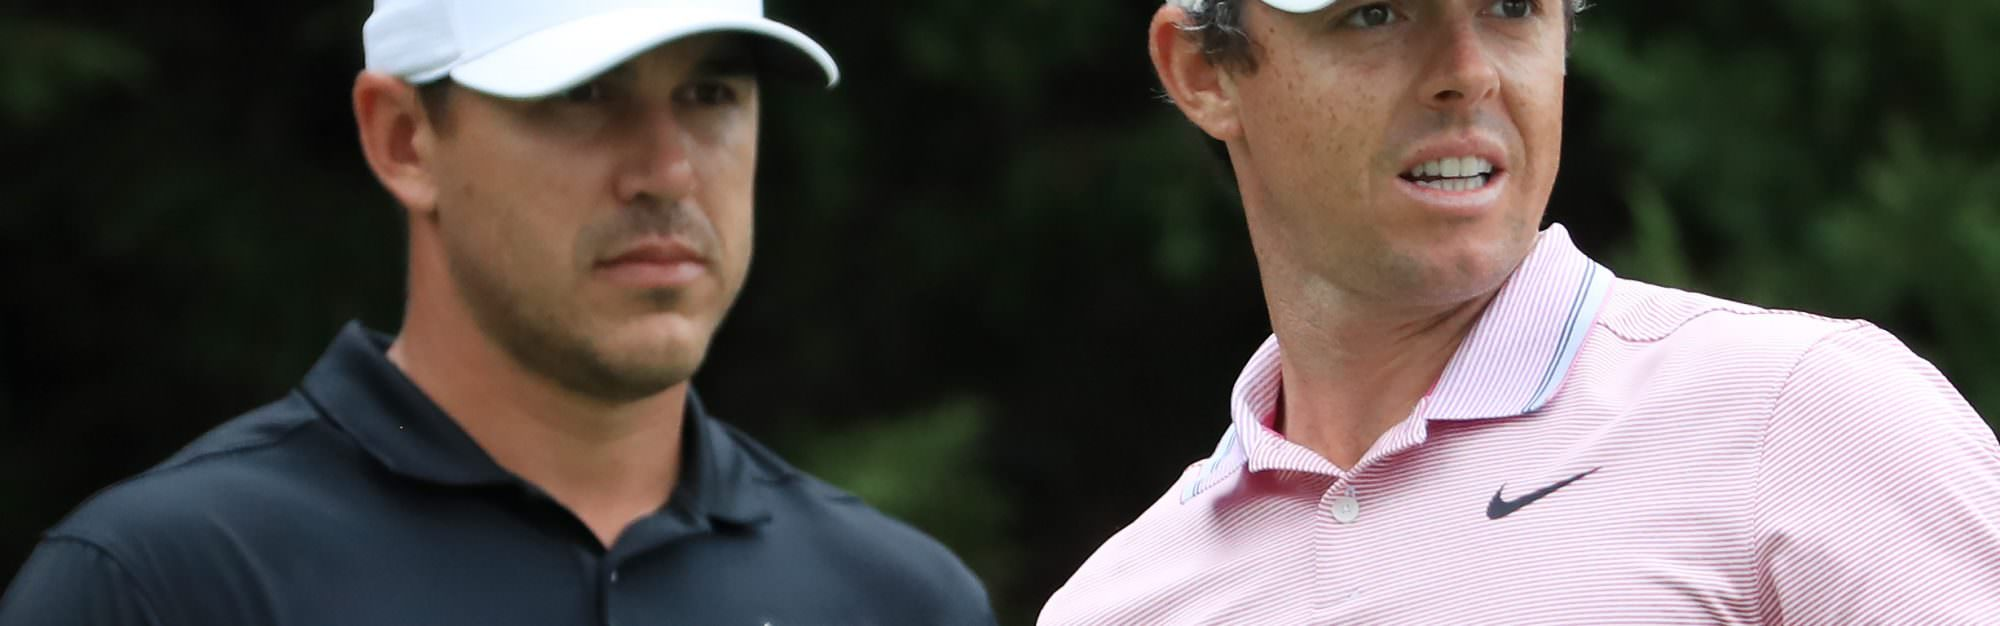 Rory and Brooks are in (different) leagues of their own